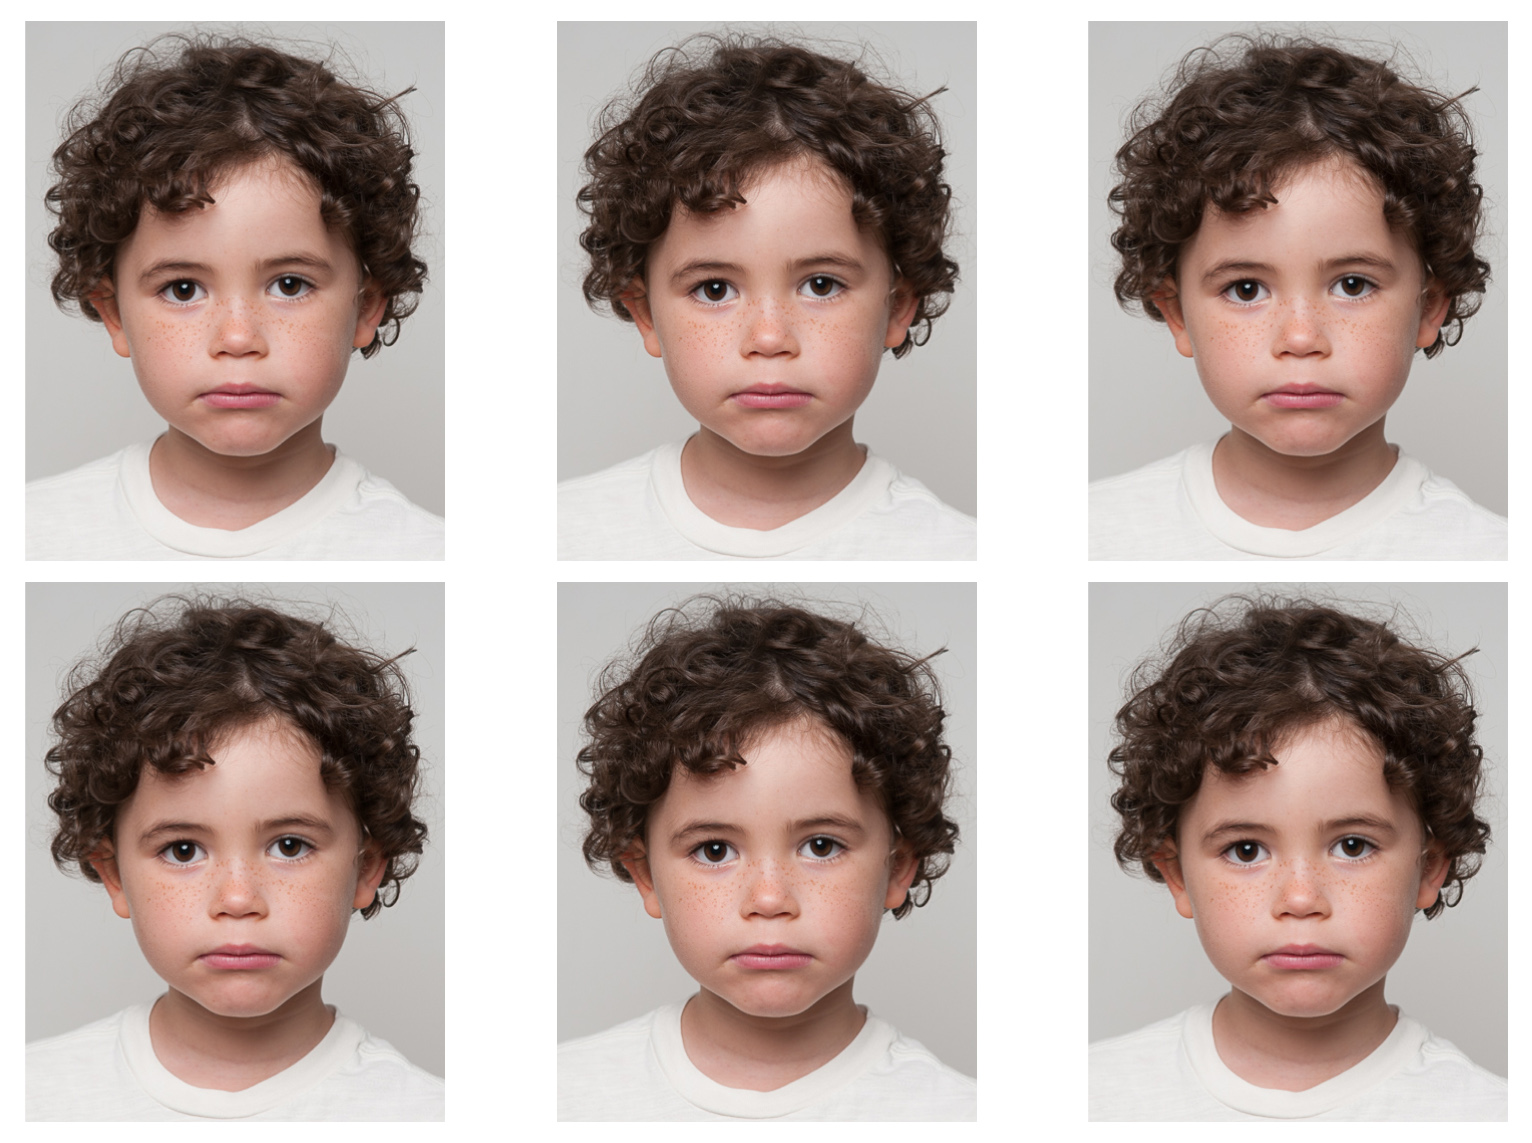 Passport-photo-the-imaging-professionals